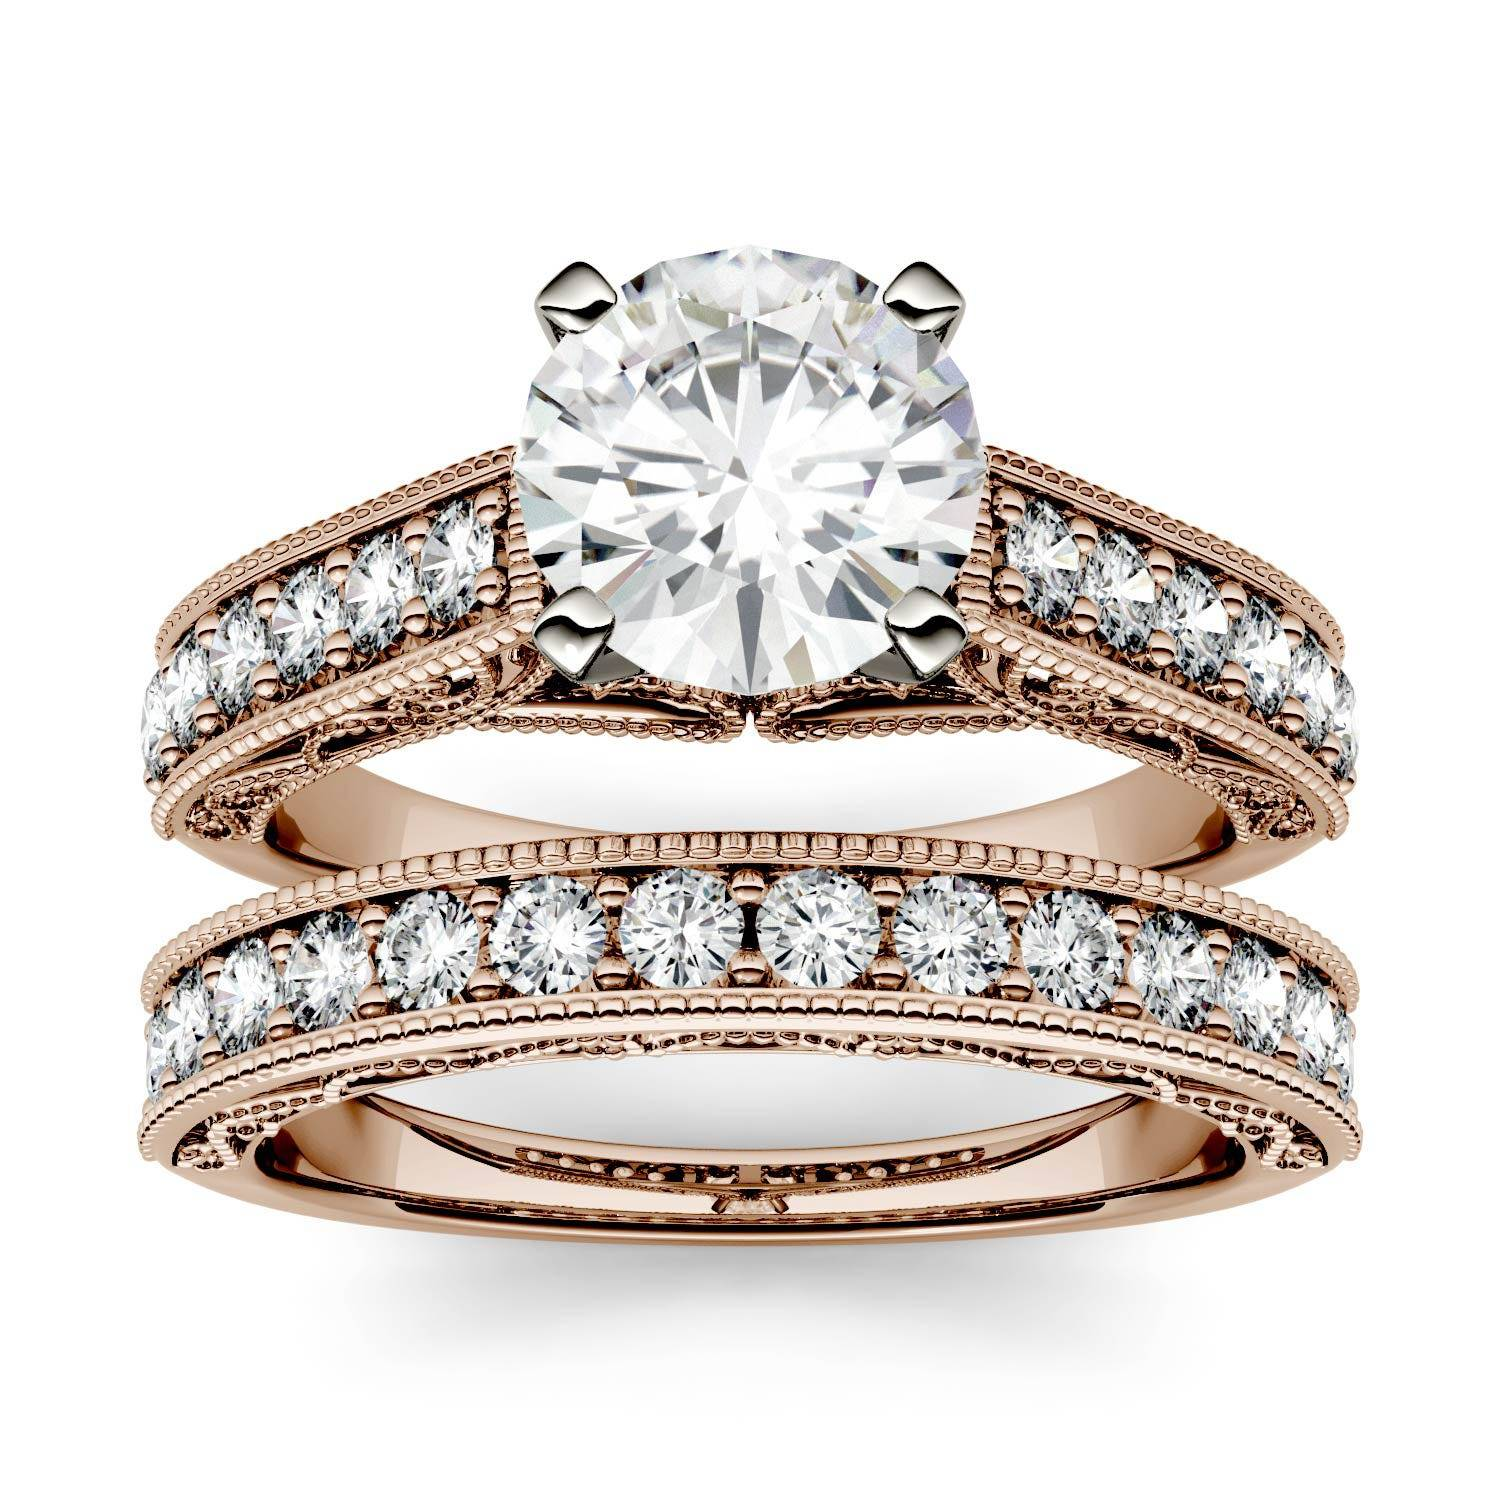 Charles & Colvard Channel Set Milgrain Bridal Engagement Ring in 14K Rose Gold, Size: 7, 1.78CTW Round Forever One - Colorless Moissanite Charles & Colvard  - Rose Gold - Size: 7